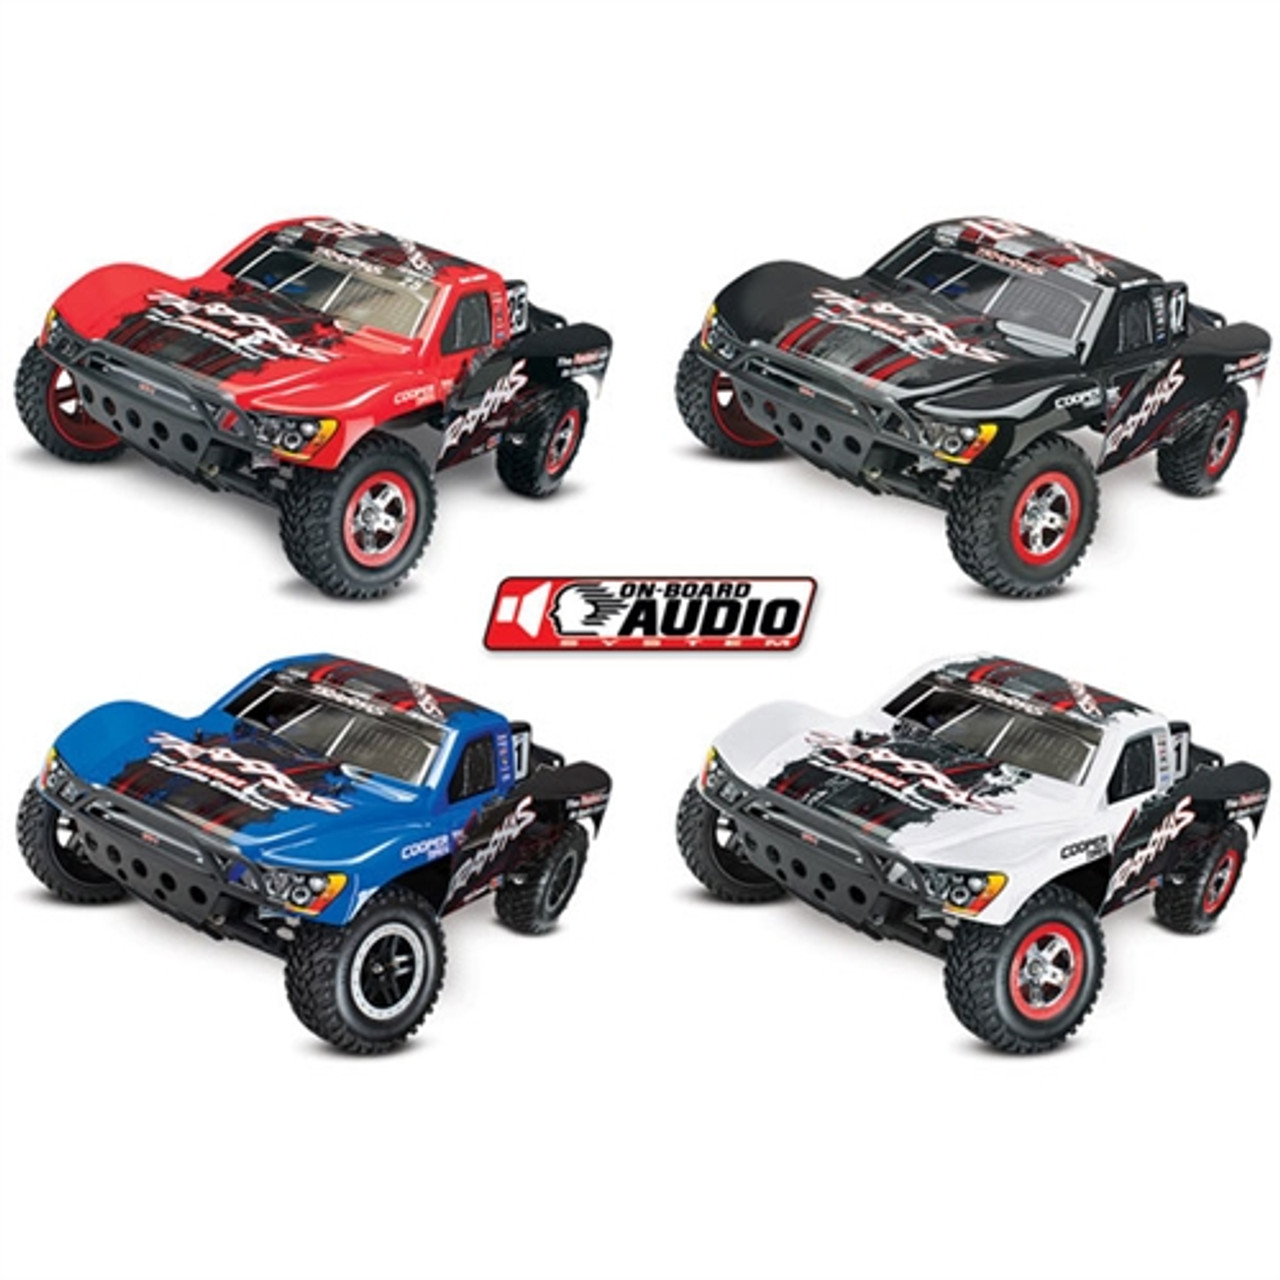 Traxxas Slash 2wd Rtr On Board Audio Rc Truck